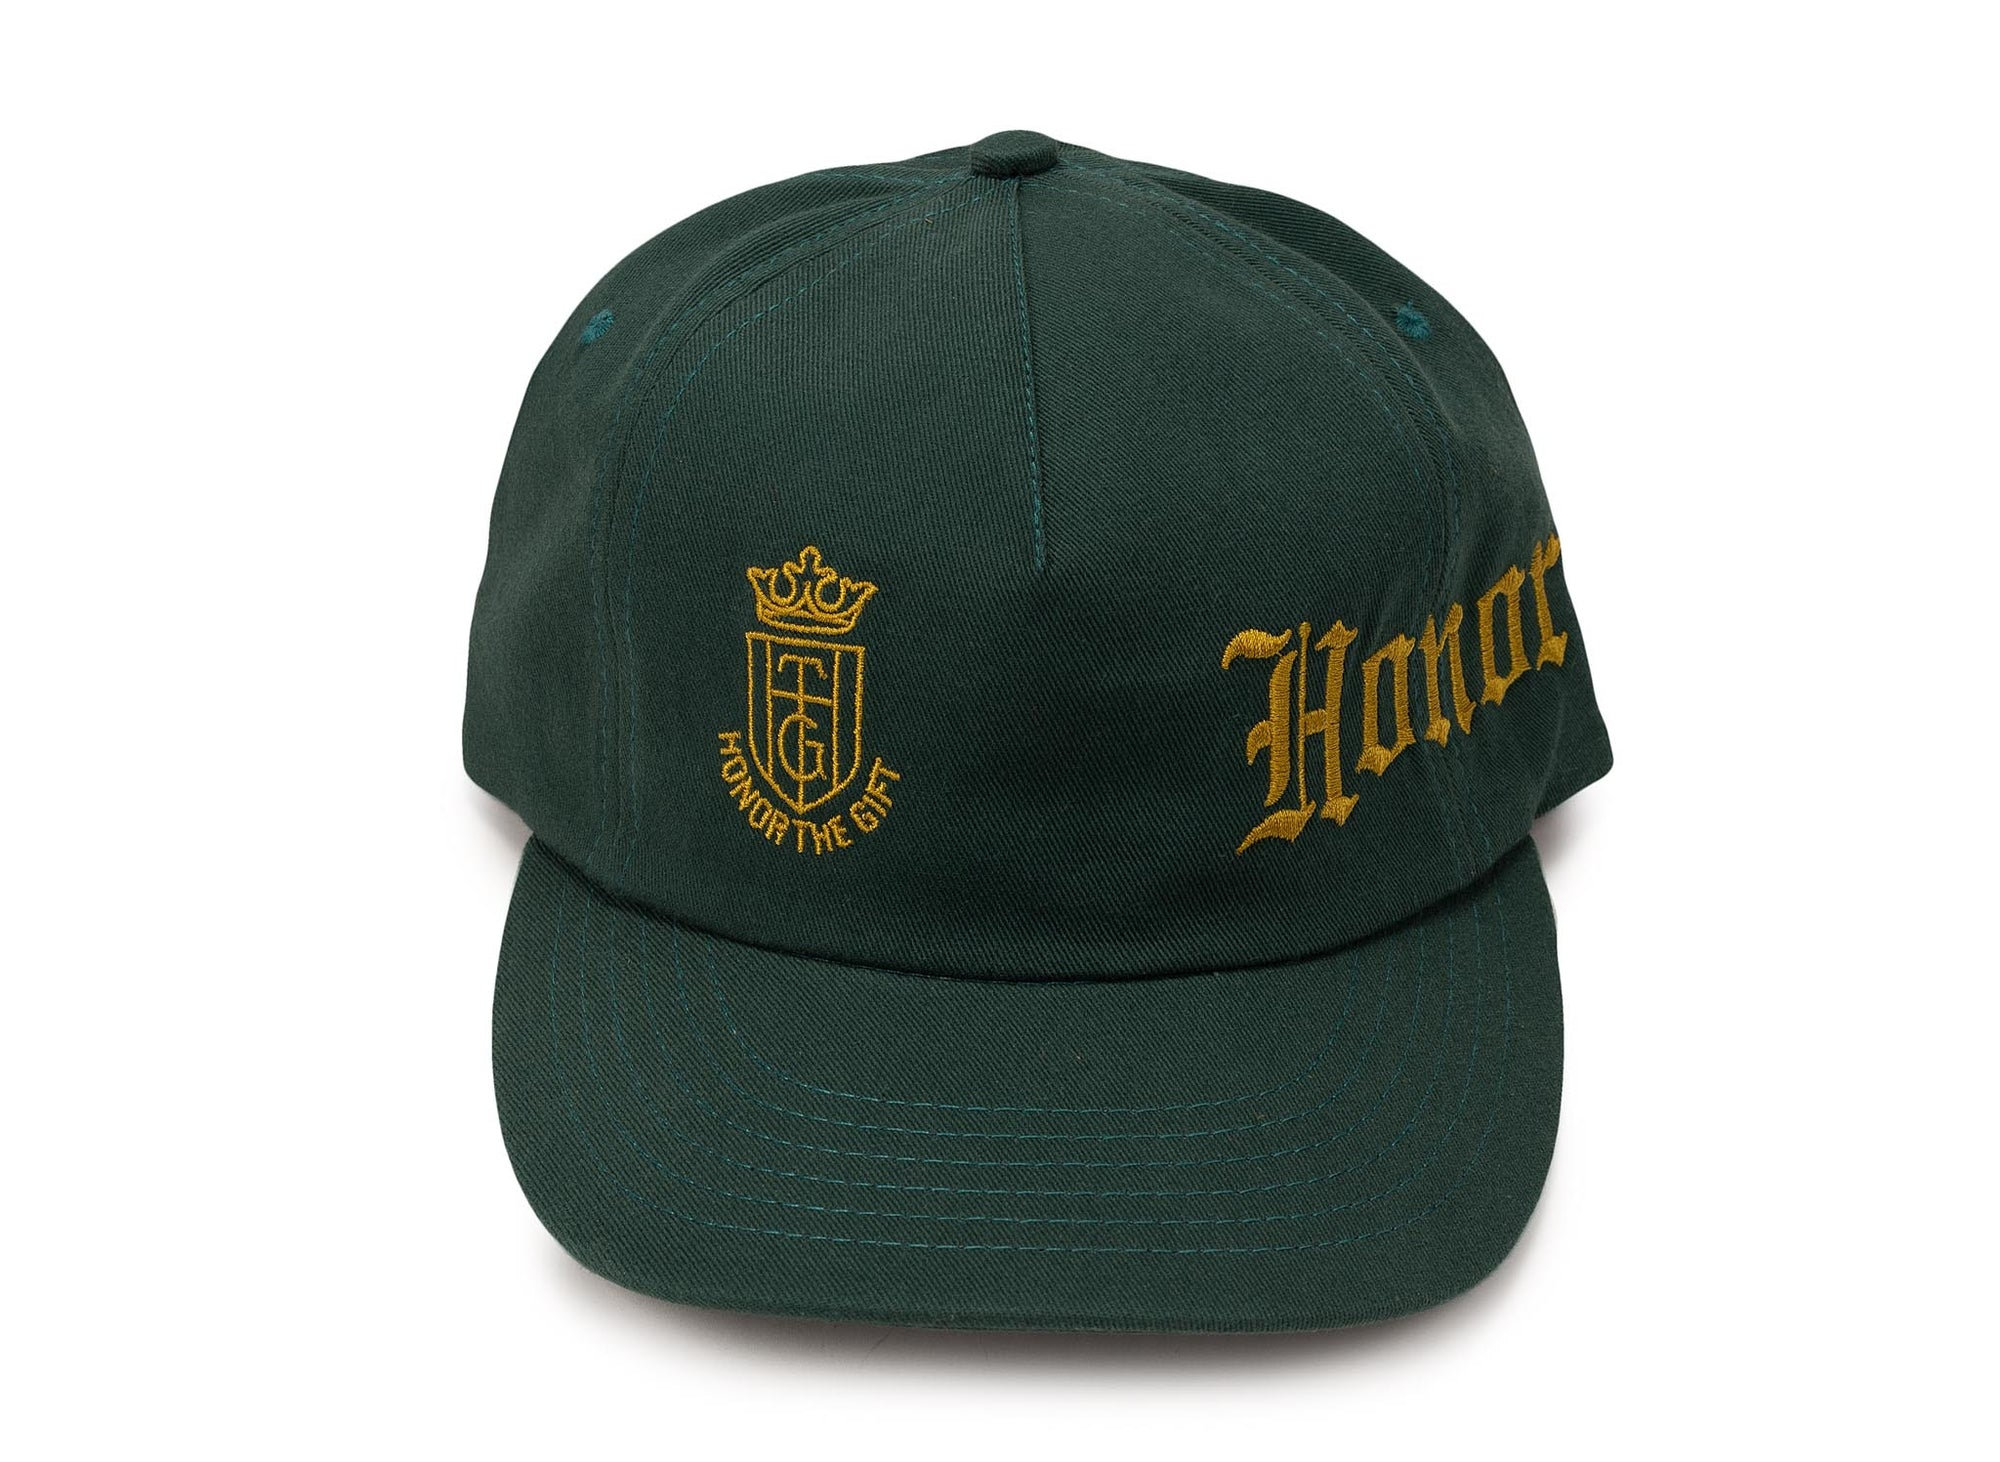 HONOR THE - GIFT Academy Polo Cap